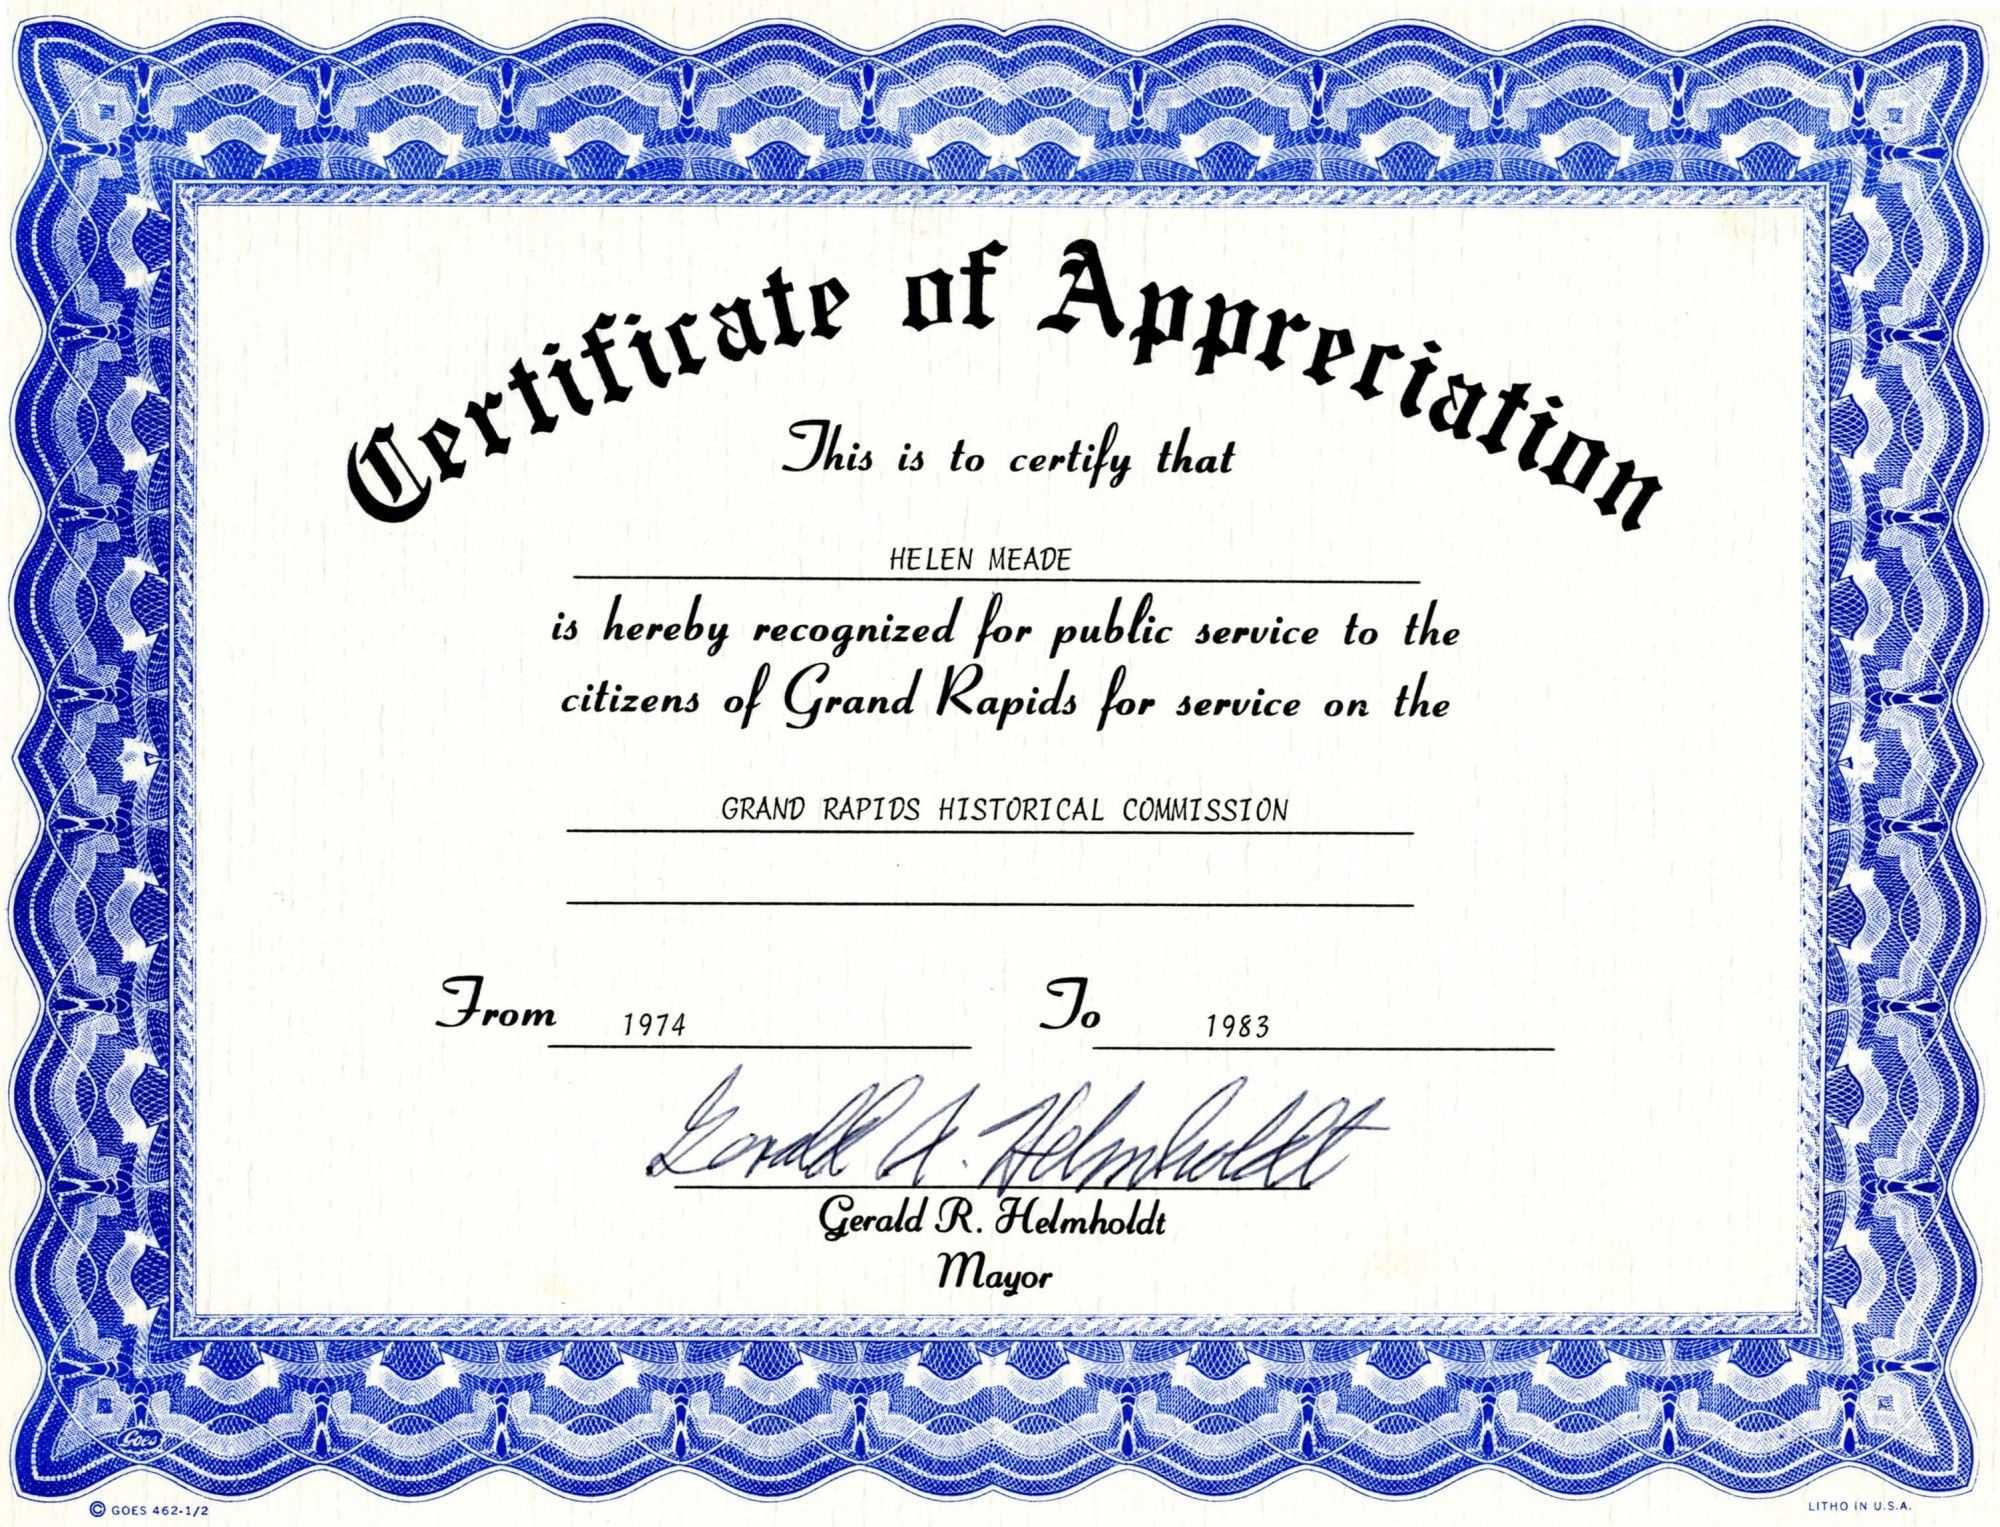 008 Years Of Service Certificate Template Singular Ideas Intended For Long Service Certificate Template Sample